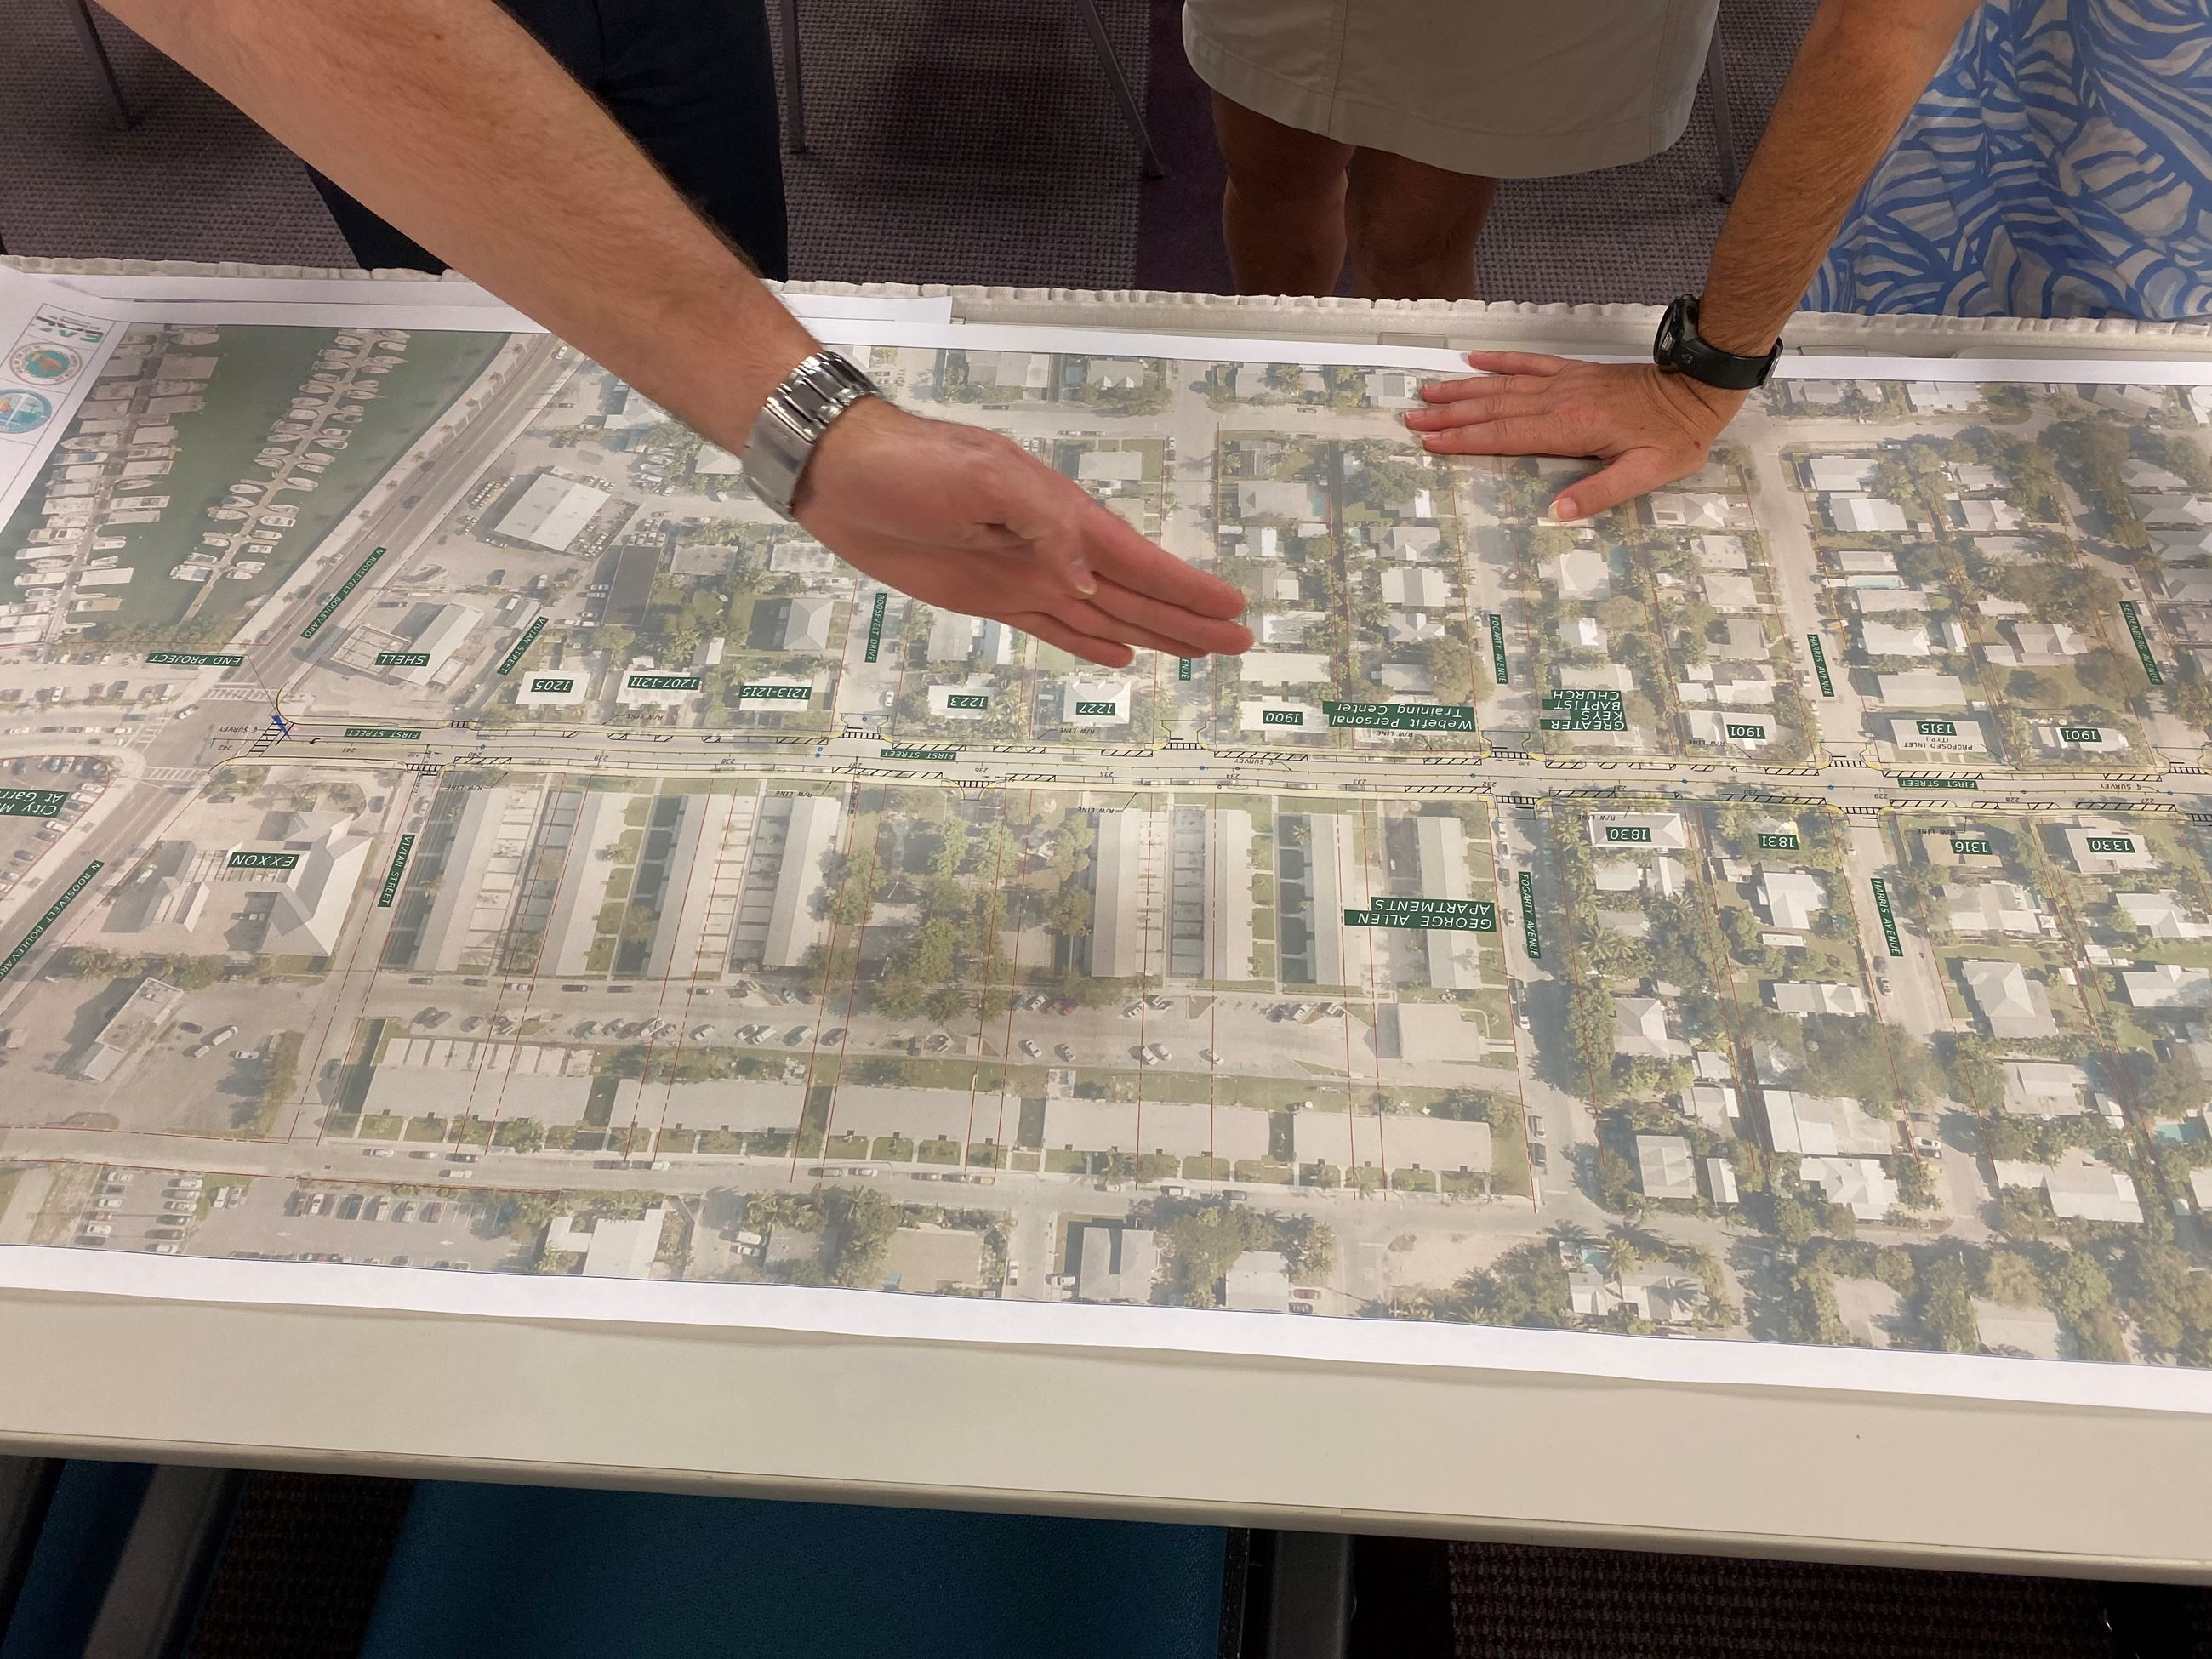 Roadway project design meeting in Key West in November